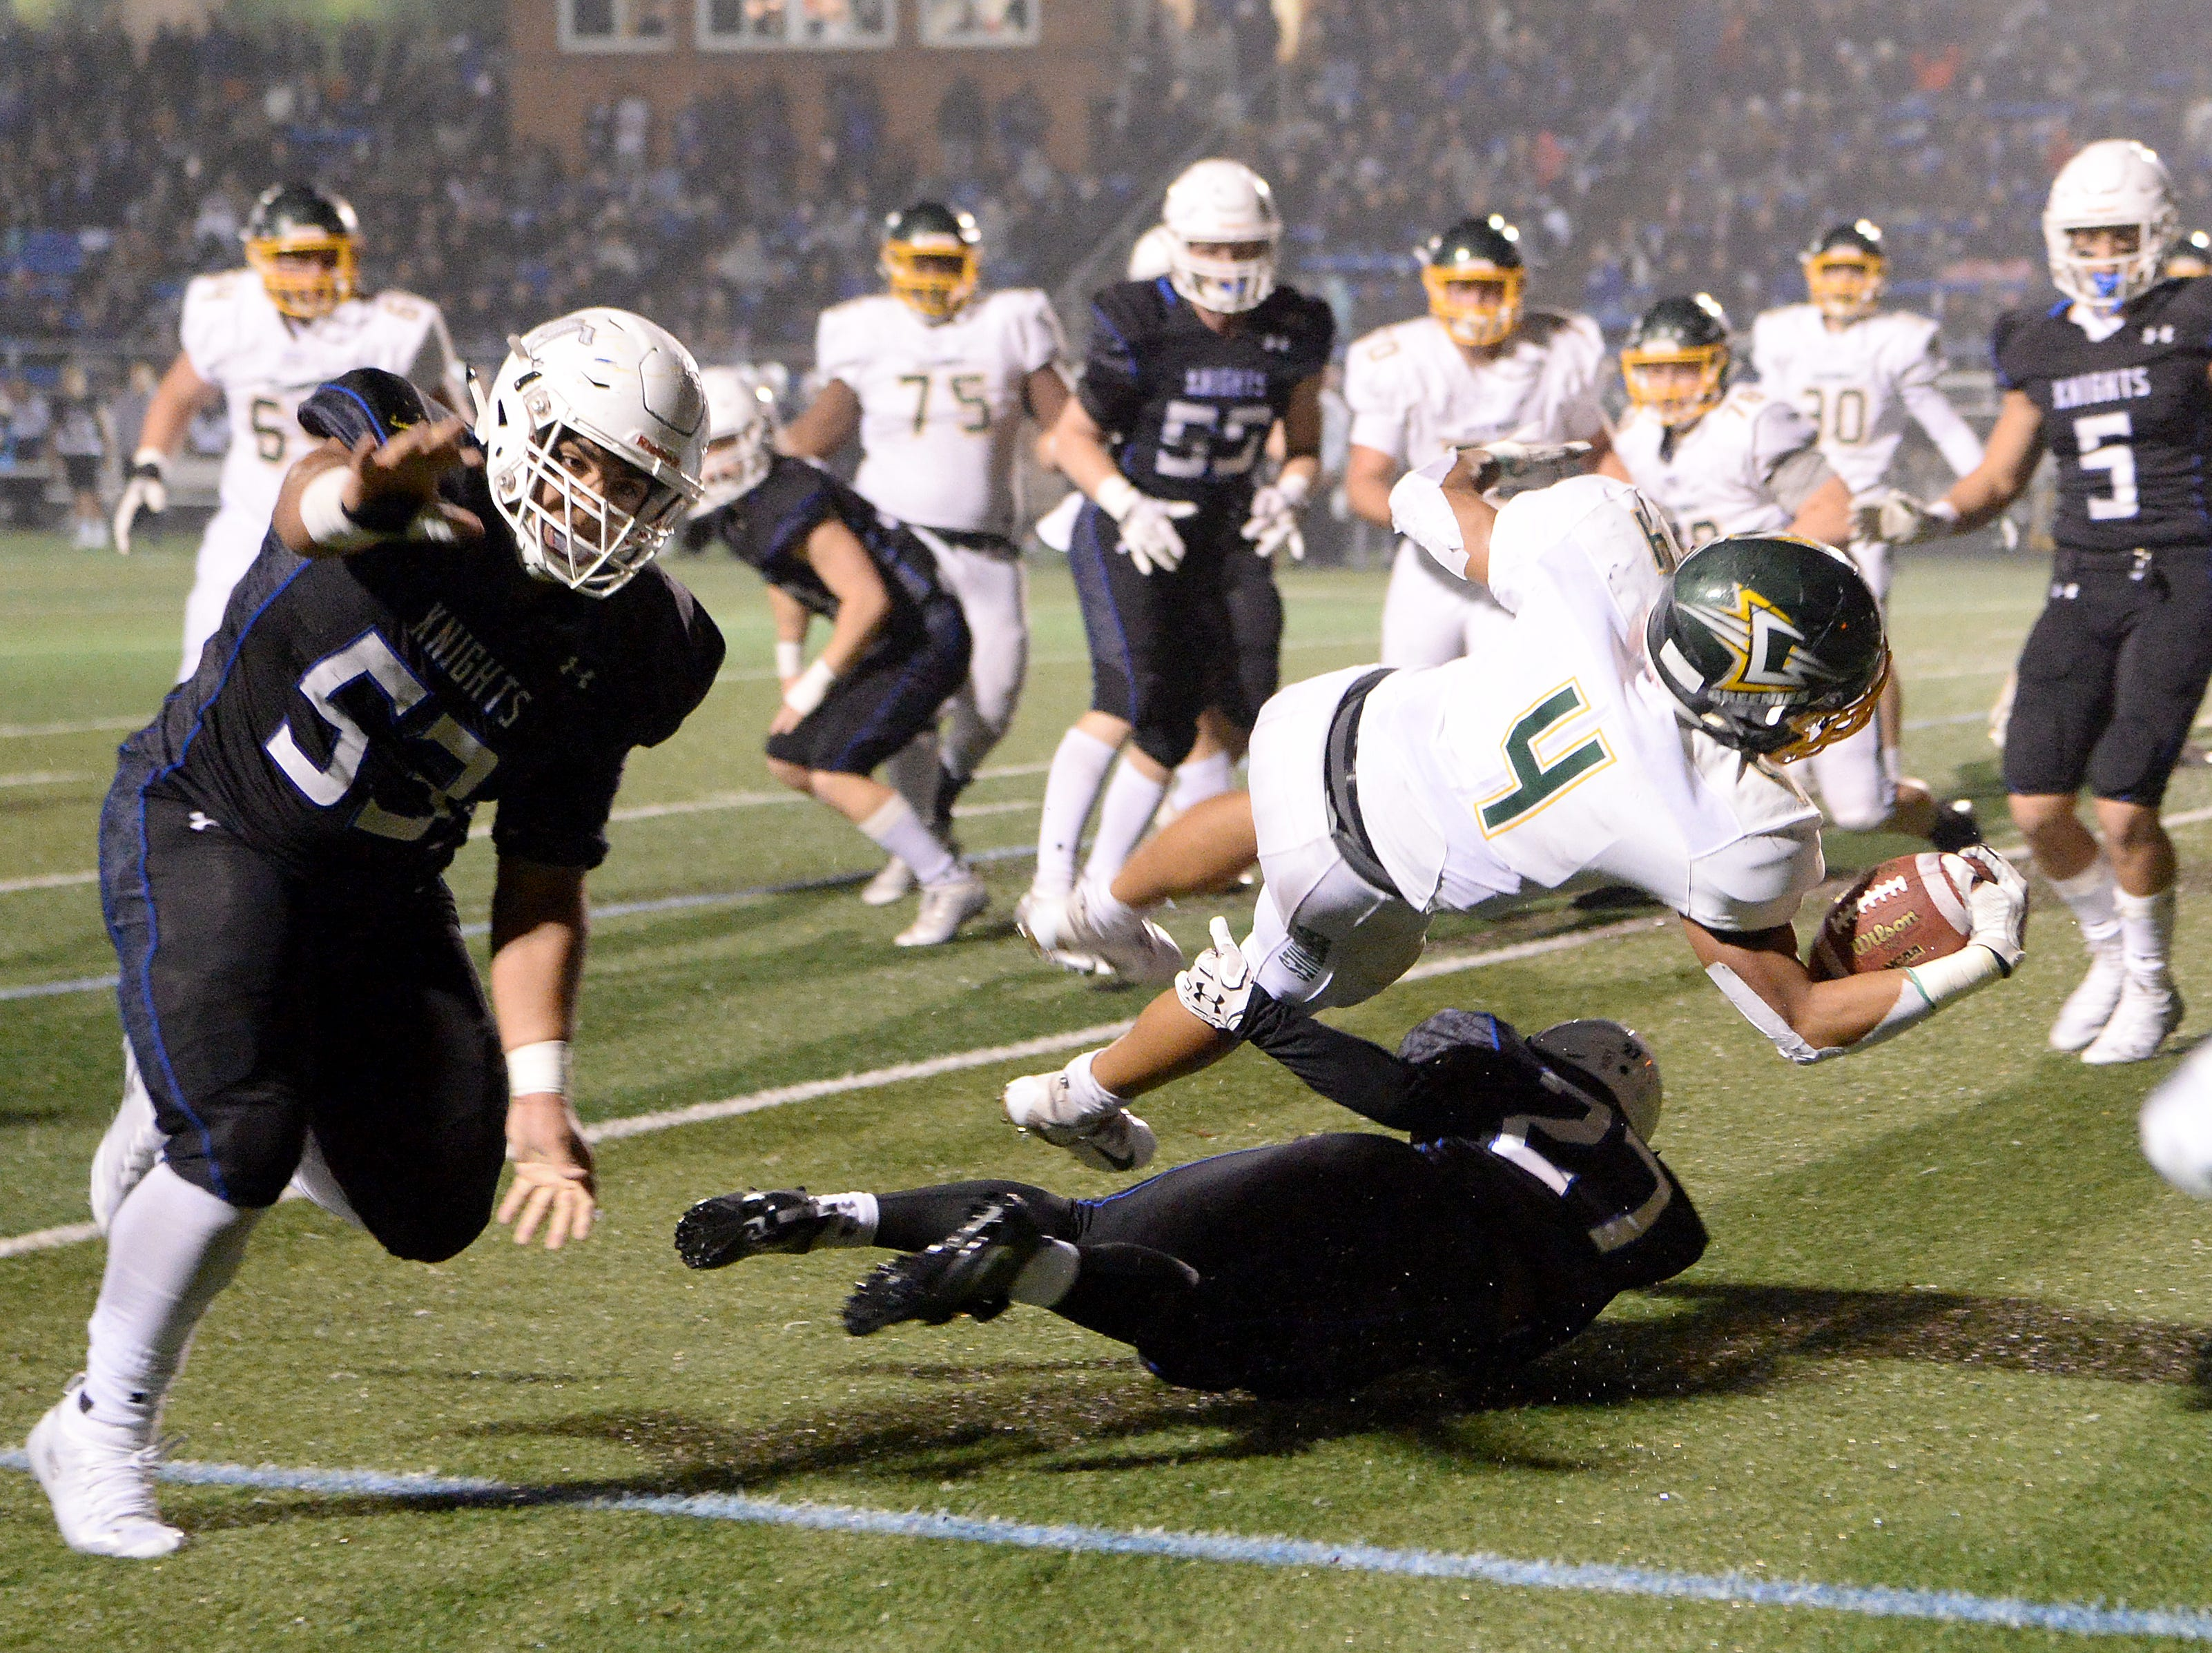 Five Christ School players named to all-state first team